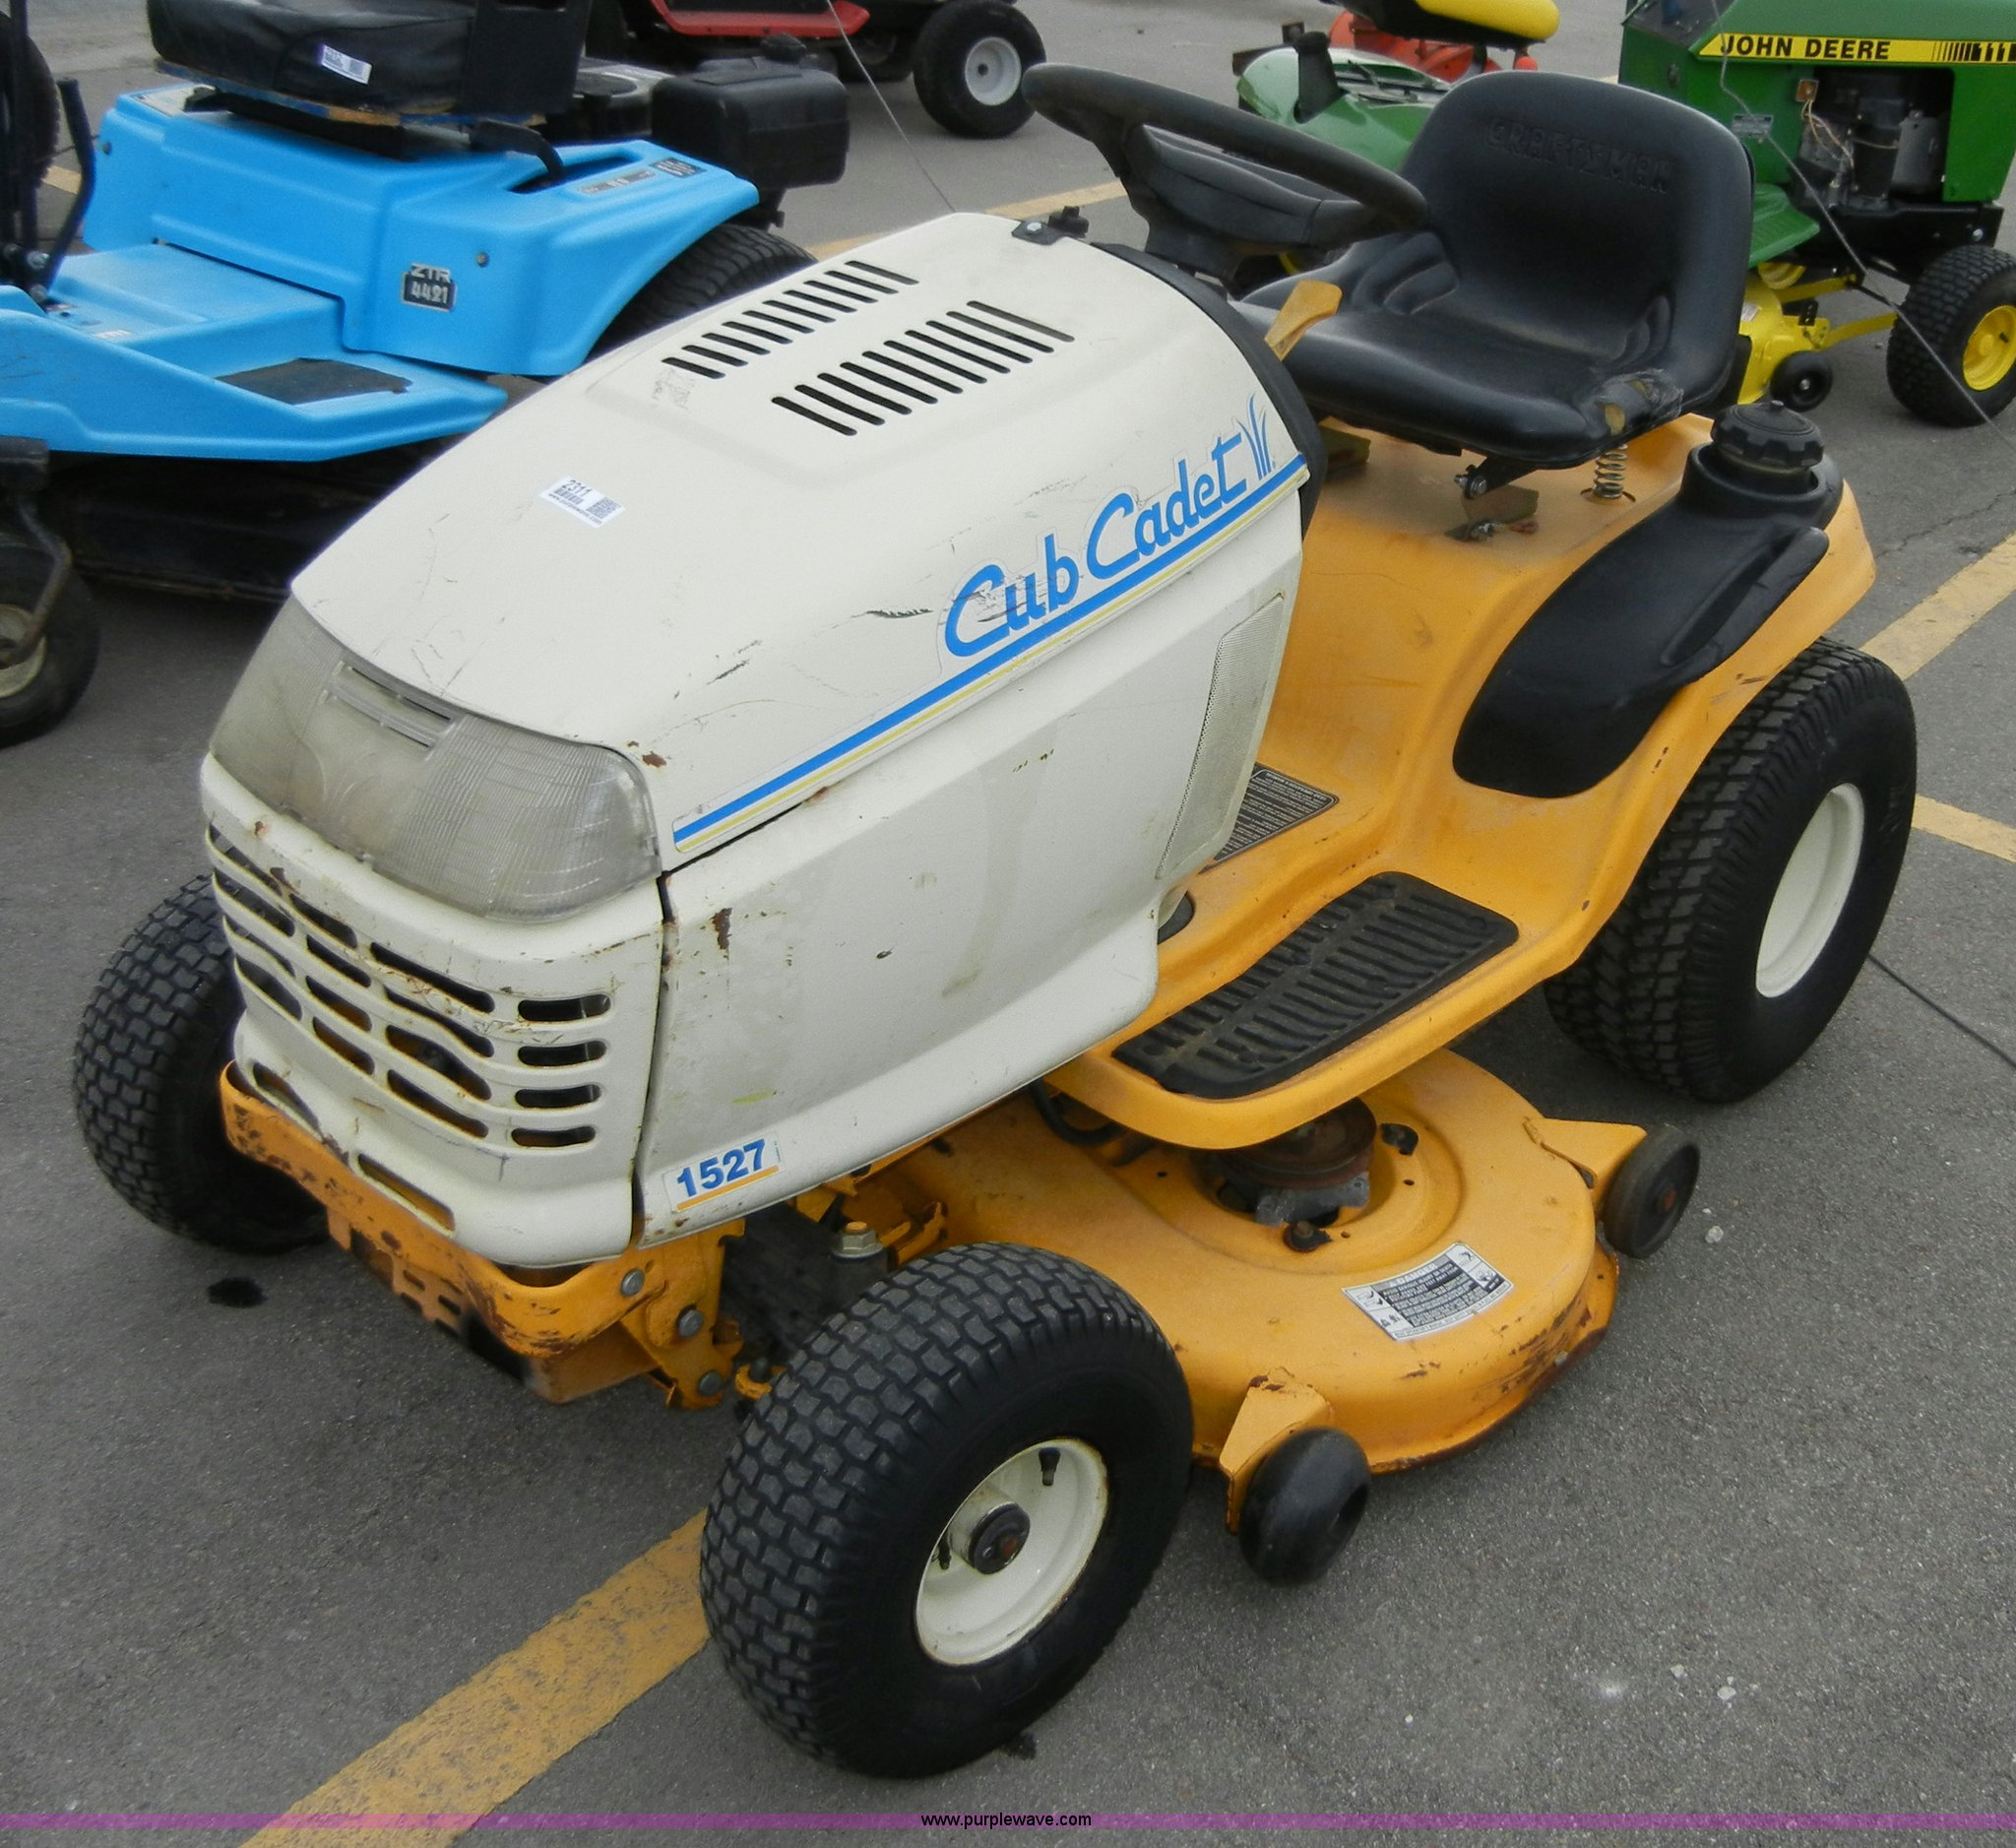 cub cadet 1527 lawn tractor full size in new window